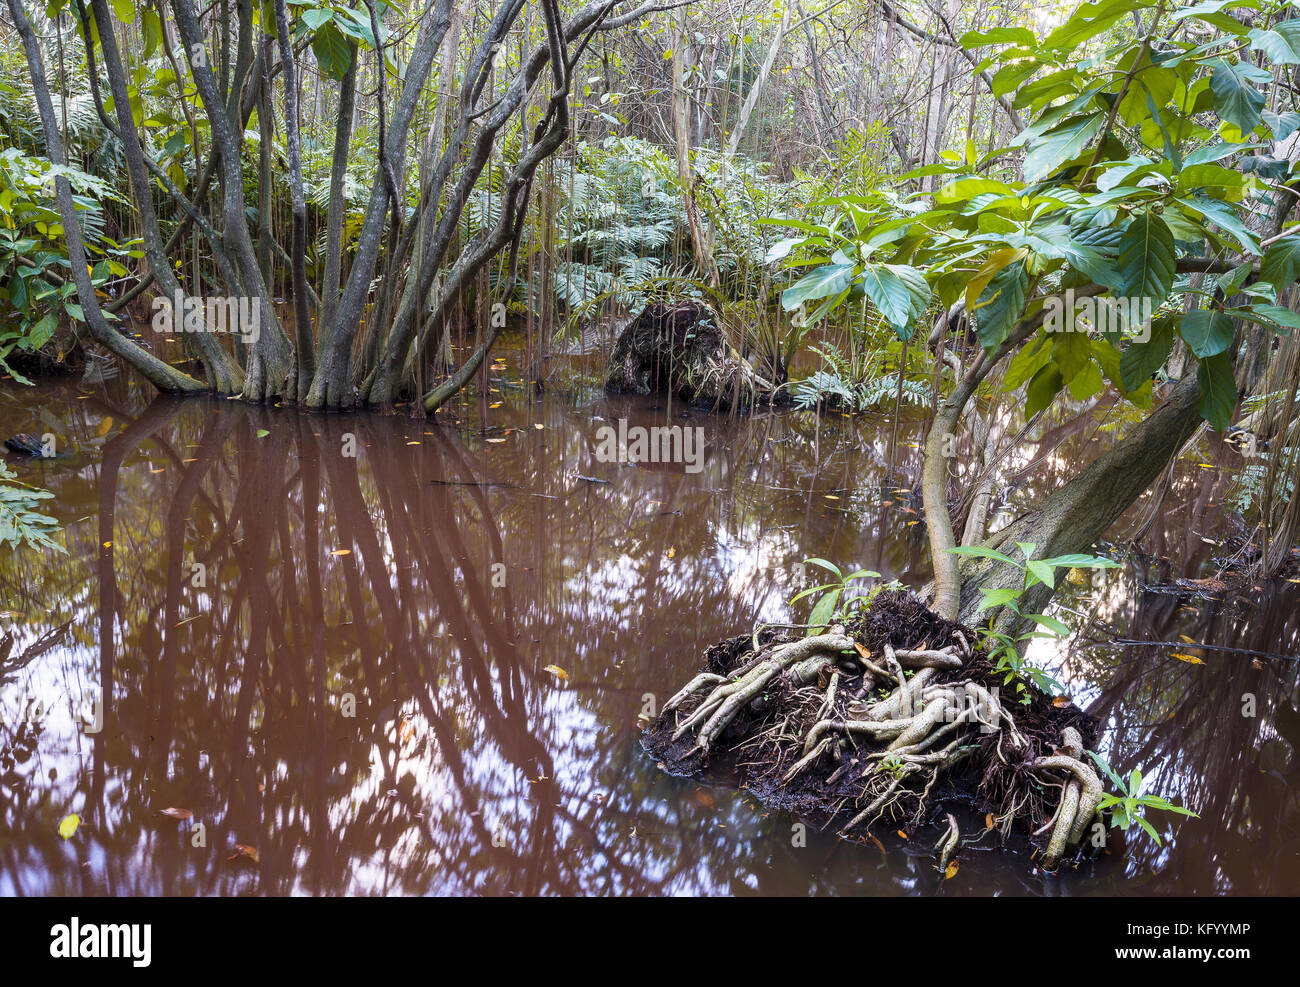 The bog in the primeval forest with rees and plants - Stock Image